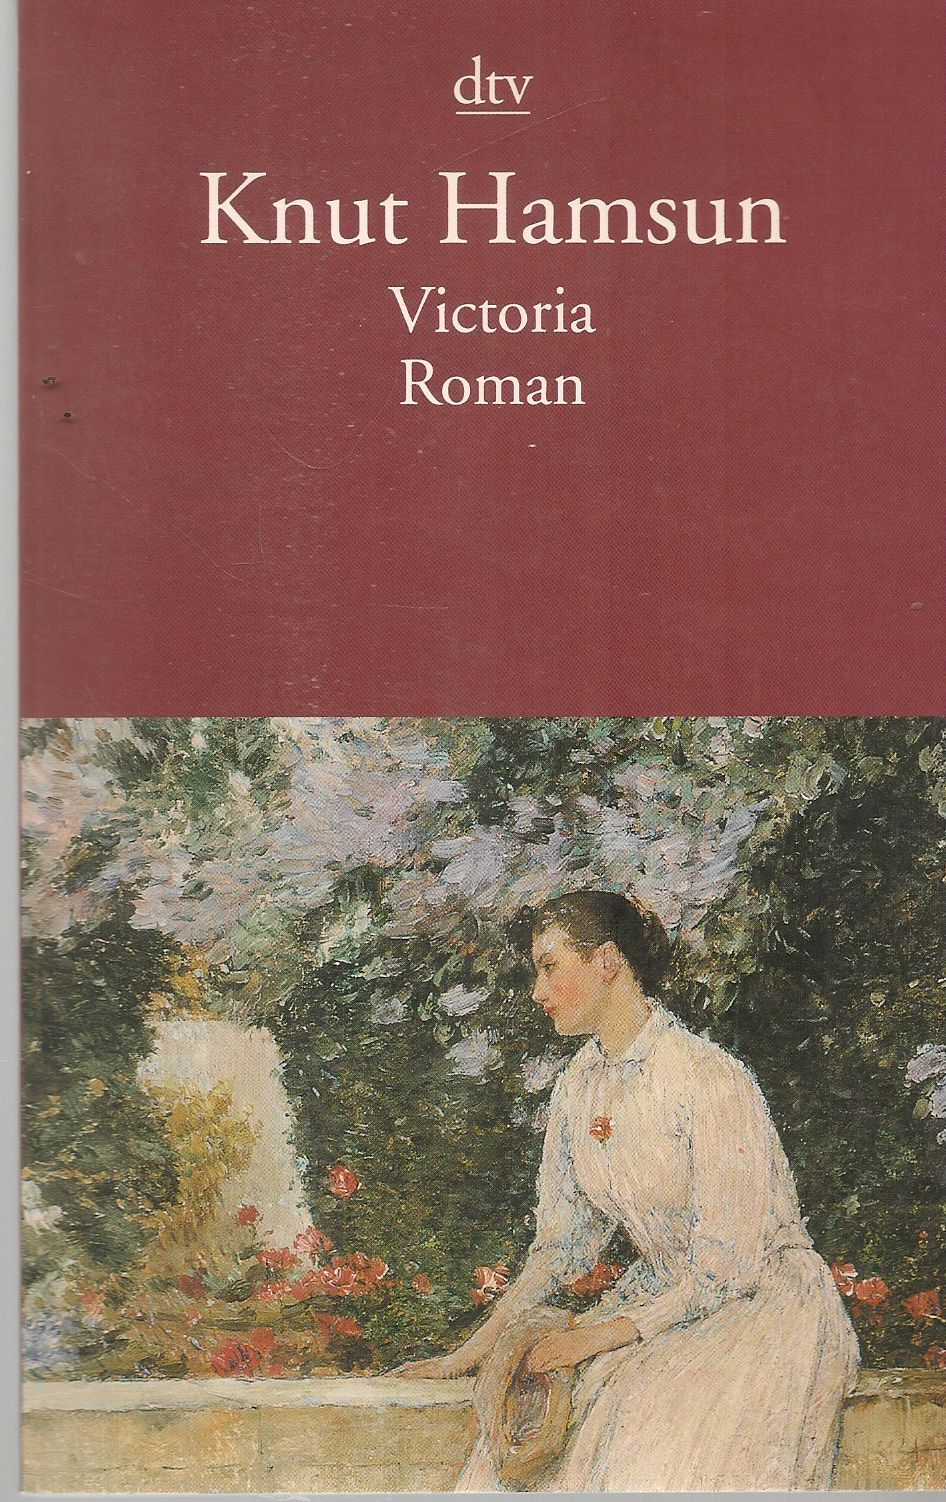 VICTORIA - KNUT HAMSUN - GERMAN TEXT